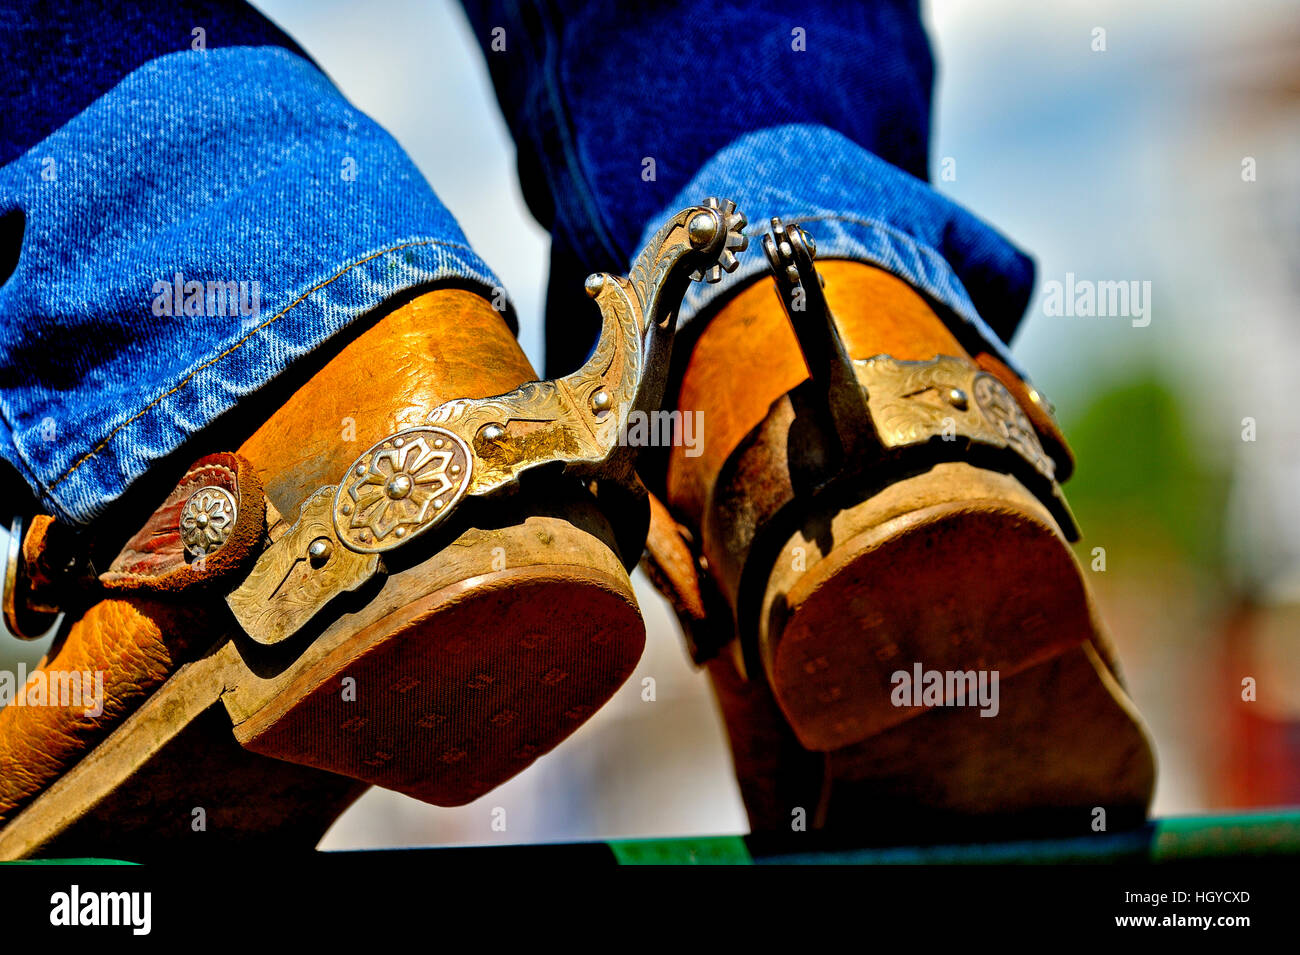 Cowboy's boots with spurs attached. - Stock Image